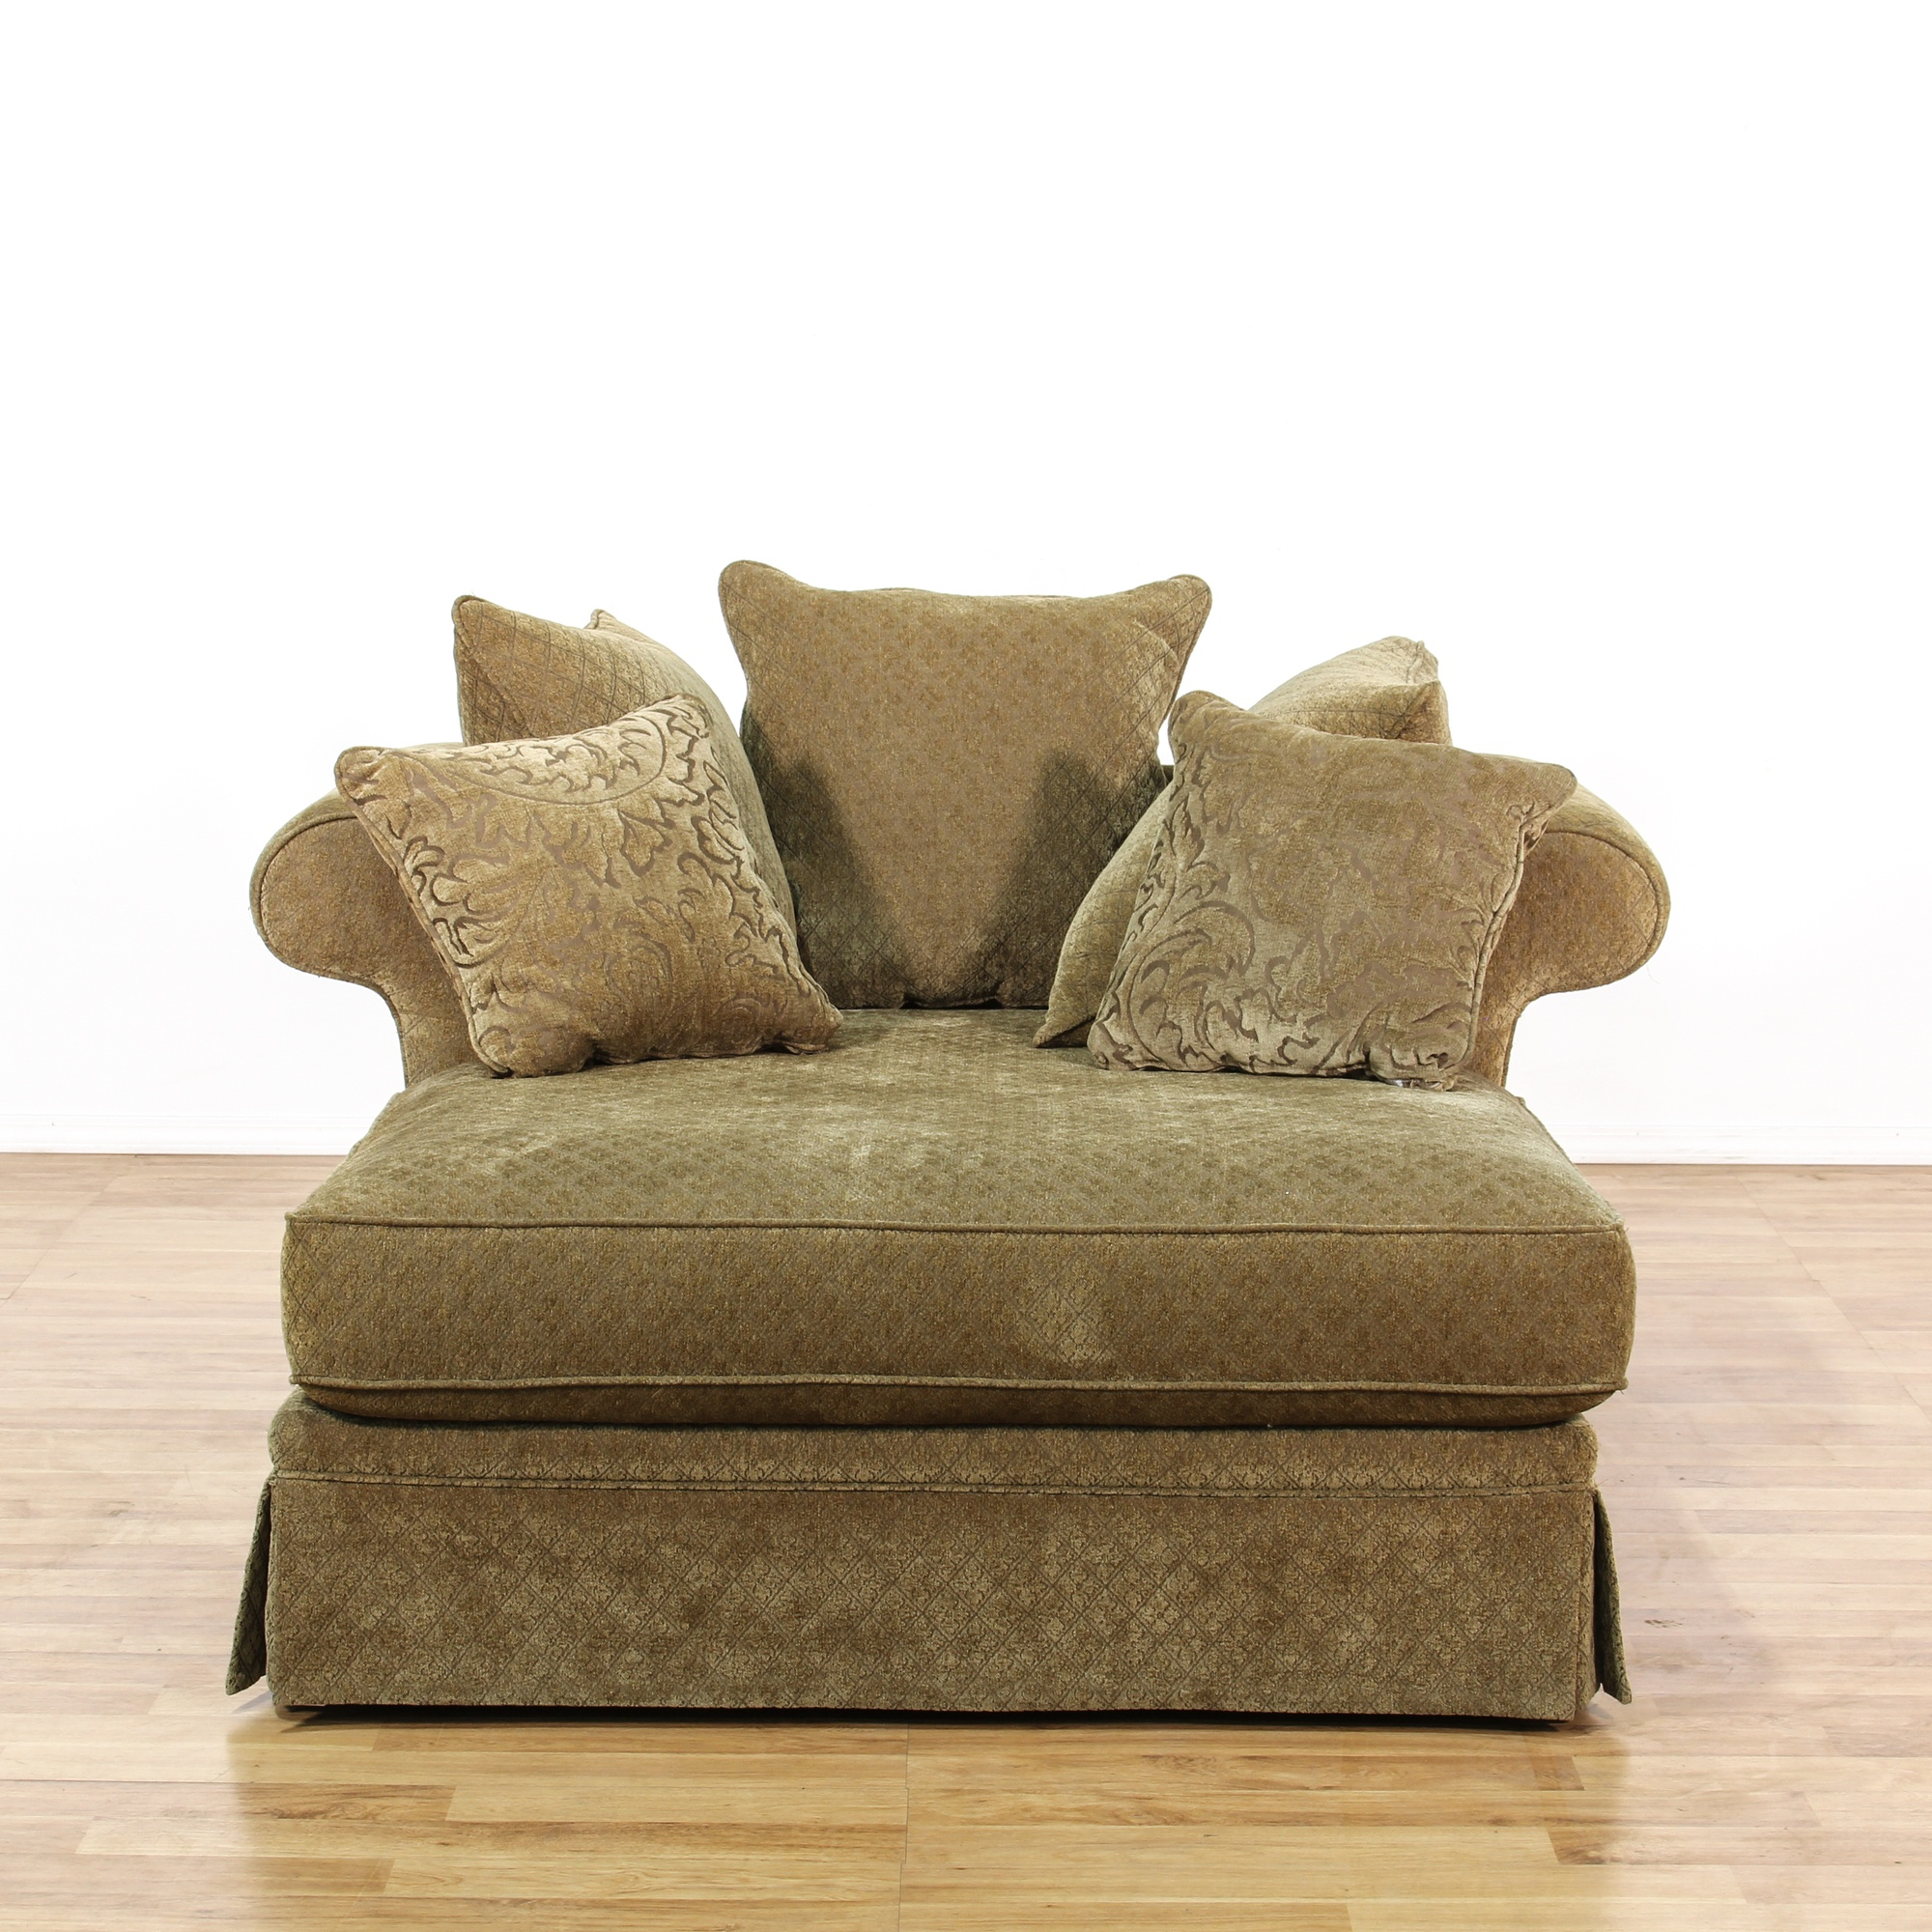 Sage Green Double Chaise Lounge Loveseat Vintage